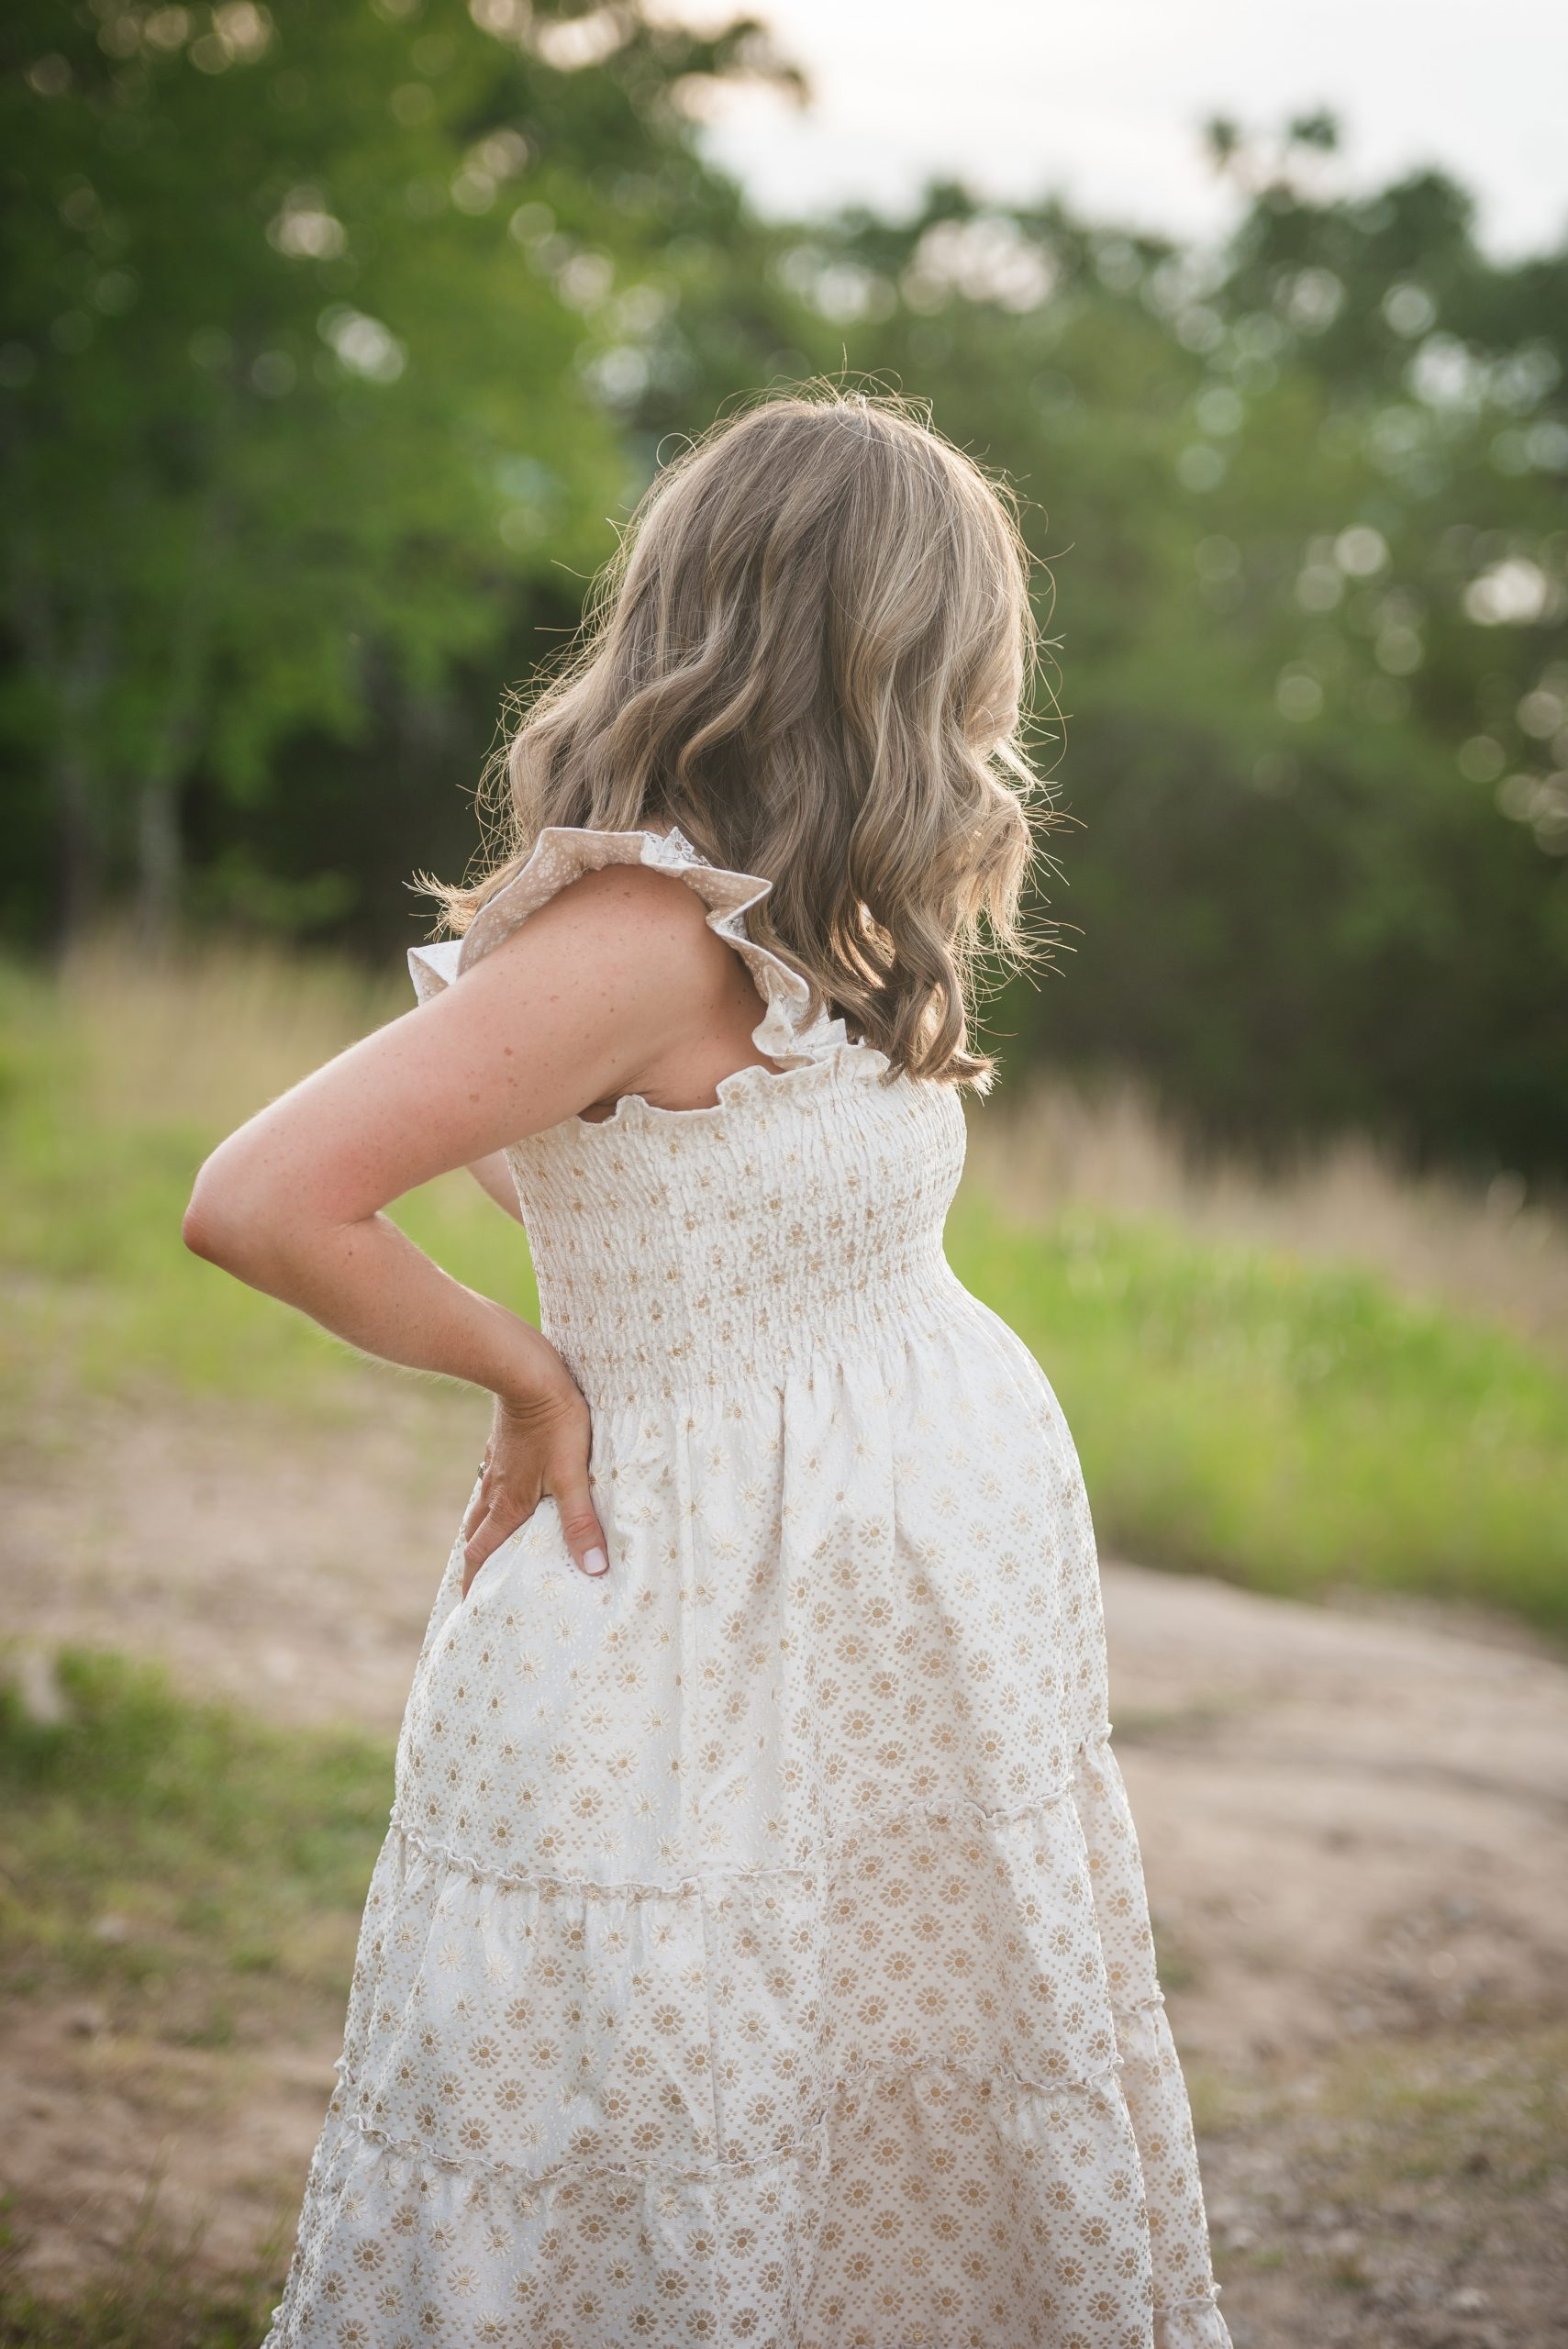 Maternity Photography Session At Canyon Lake, Texas In July Gruene Photography 23